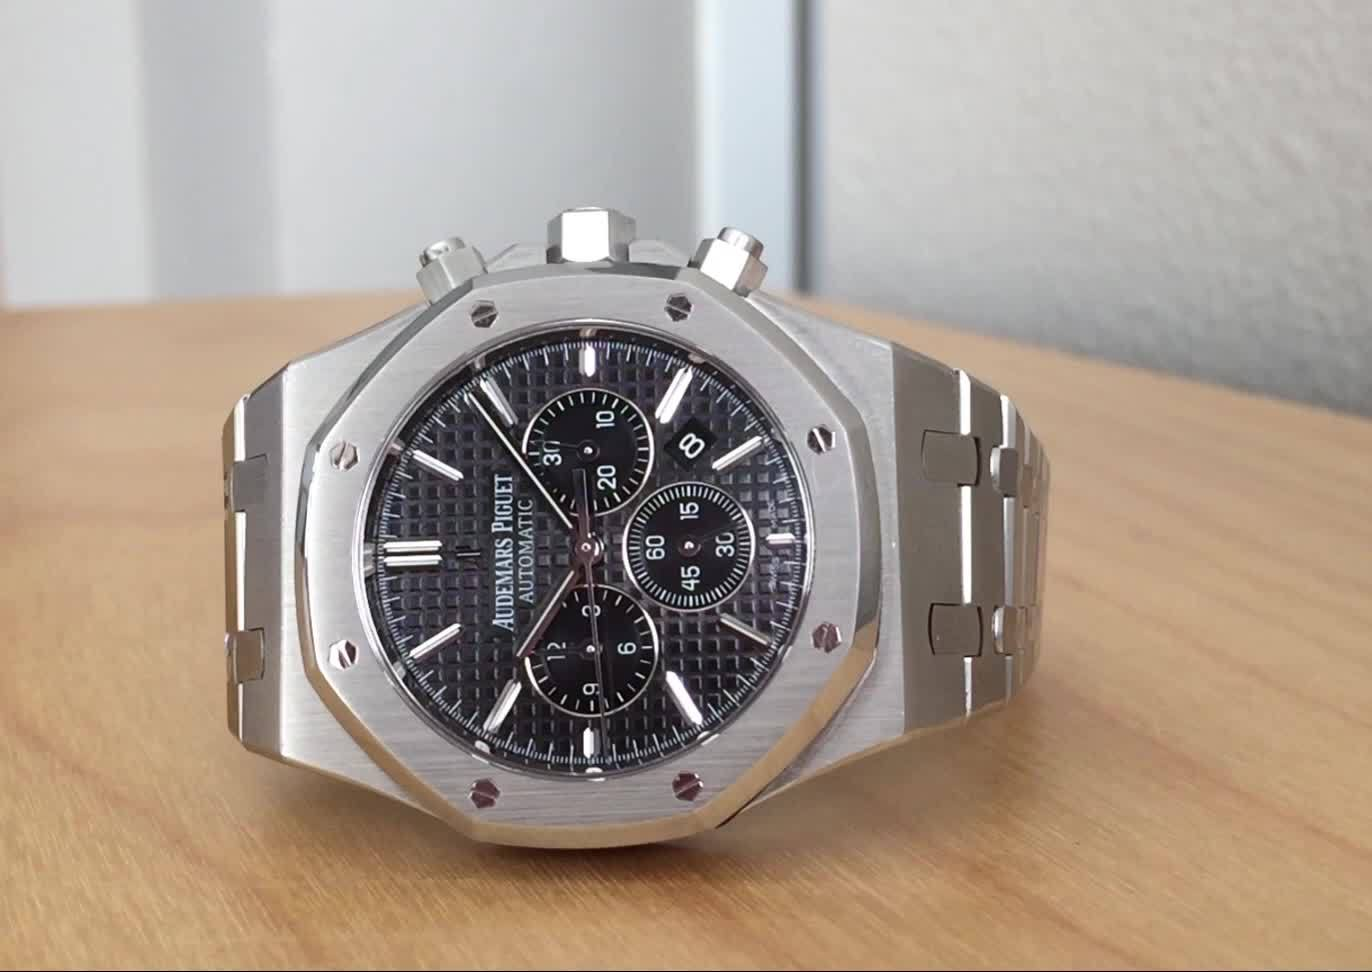 watch, Royal Oak Chronograph GIFs